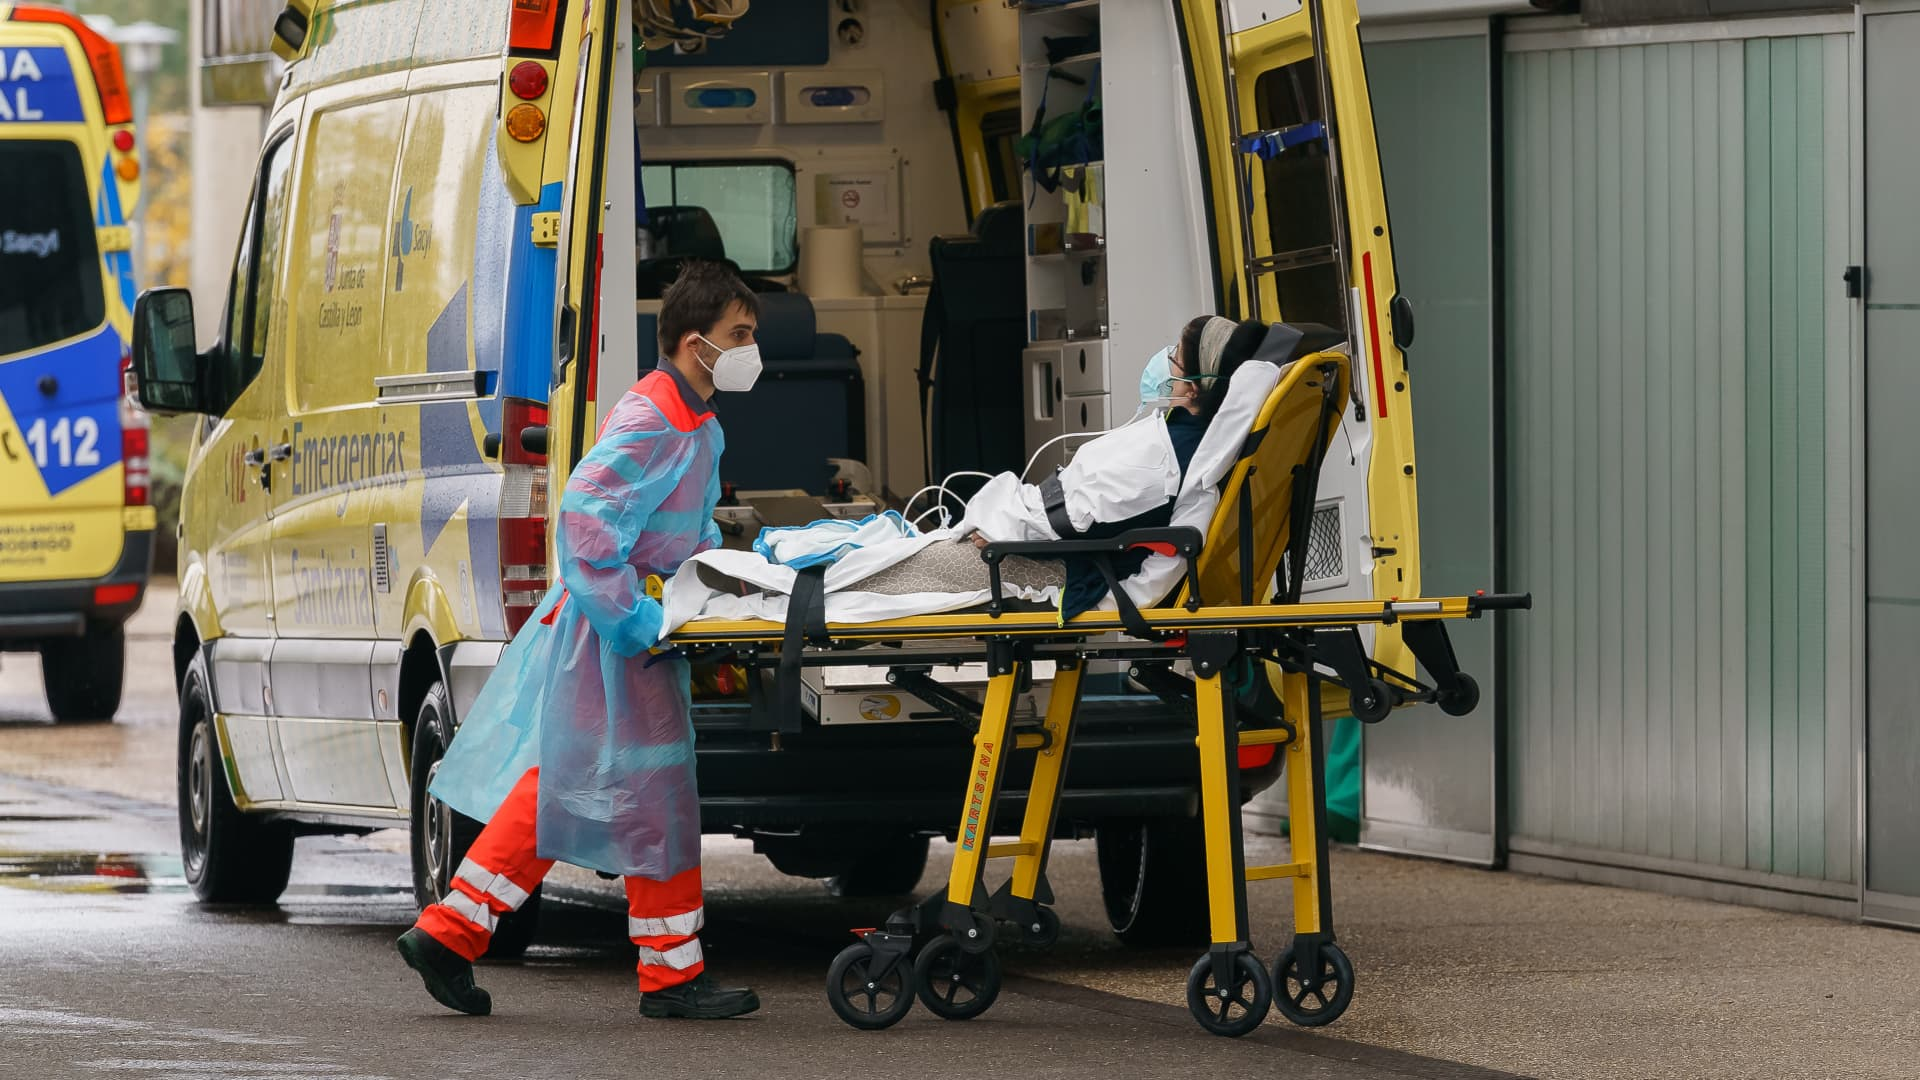 A paramedic wheels a woman out of an ambulance outside the Burgos Hospital in Burgos, northern Spain, on October 21, 2020, on the first day of a two week lockdown in an attempt to limit the contagion of the new coronavirus COVID-19 in the area.